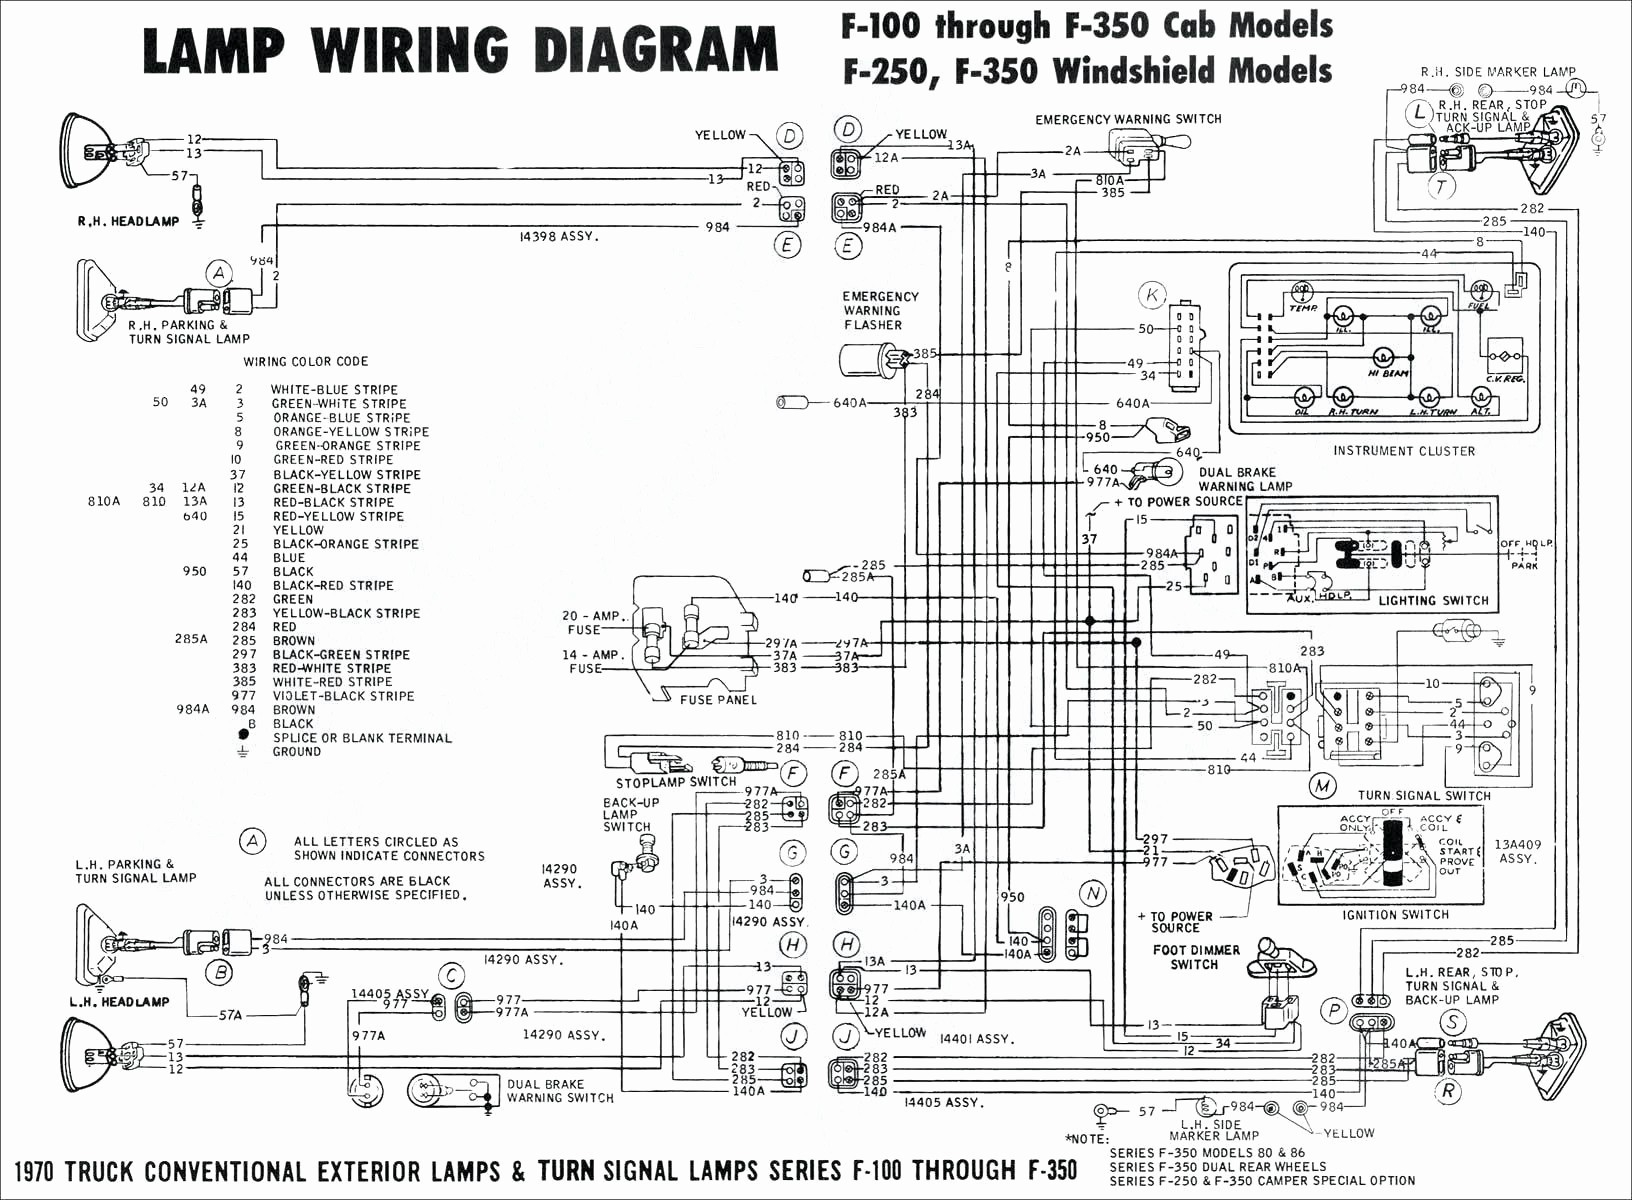 Gm Headlight Switch | Wiring Diagram Database on fusion wiring diagram, taurus wiring diagram, civic wiring diagram, k5 blazer wiring diagram, model a wiring diagram, f250 super duty wiring diagram, f150 wiring diagram, bronco wiring diagram, windstar wiring diagram, crown victoria wiring diagram, mustang wiring diagram,